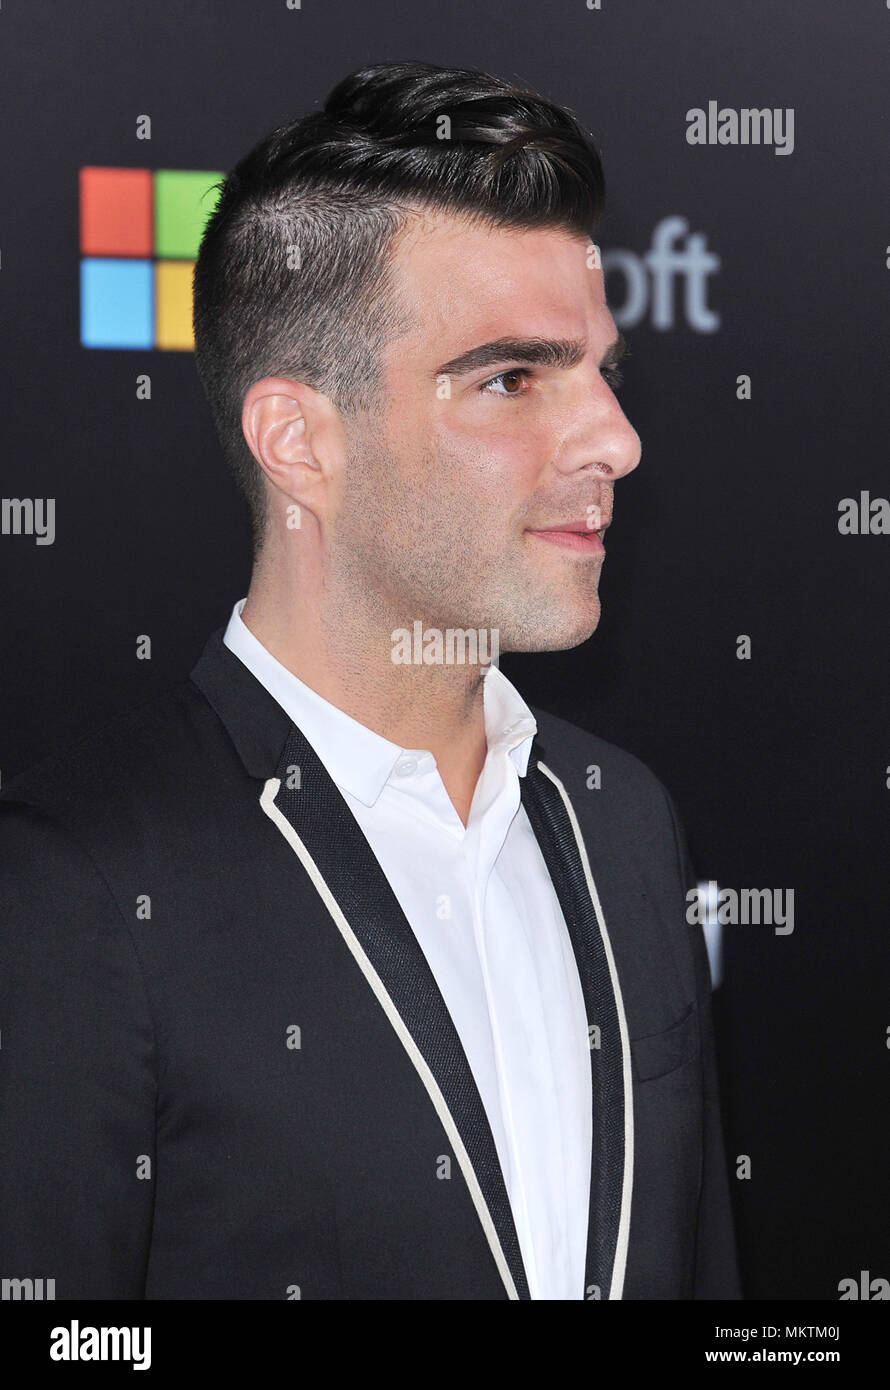 Zachary Quinto  arriving at Star Trek Into Darkness Premiere at the Dolby Theatre in Los Angeles.Zachary Quinto  Red Carpet Event, Vertical, USA, Film Industry, Celebrities,  Photography, Bestof, Arts Culture and Entertainment, Topix Celebrities fashion /  Vertical, Best of, Event in Hollywood Life - California,  Red Carpet and backstage, USA, Film Industry, Celebrities,  movie celebrities, TV celebrities, Music celebrities, Photography, Bestof, Arts Culture and Entertainment,  Topix, headshot, vertical, one person,, from the year , 2013, inquiry tsuni@Gamma-USA.com - Stock Image